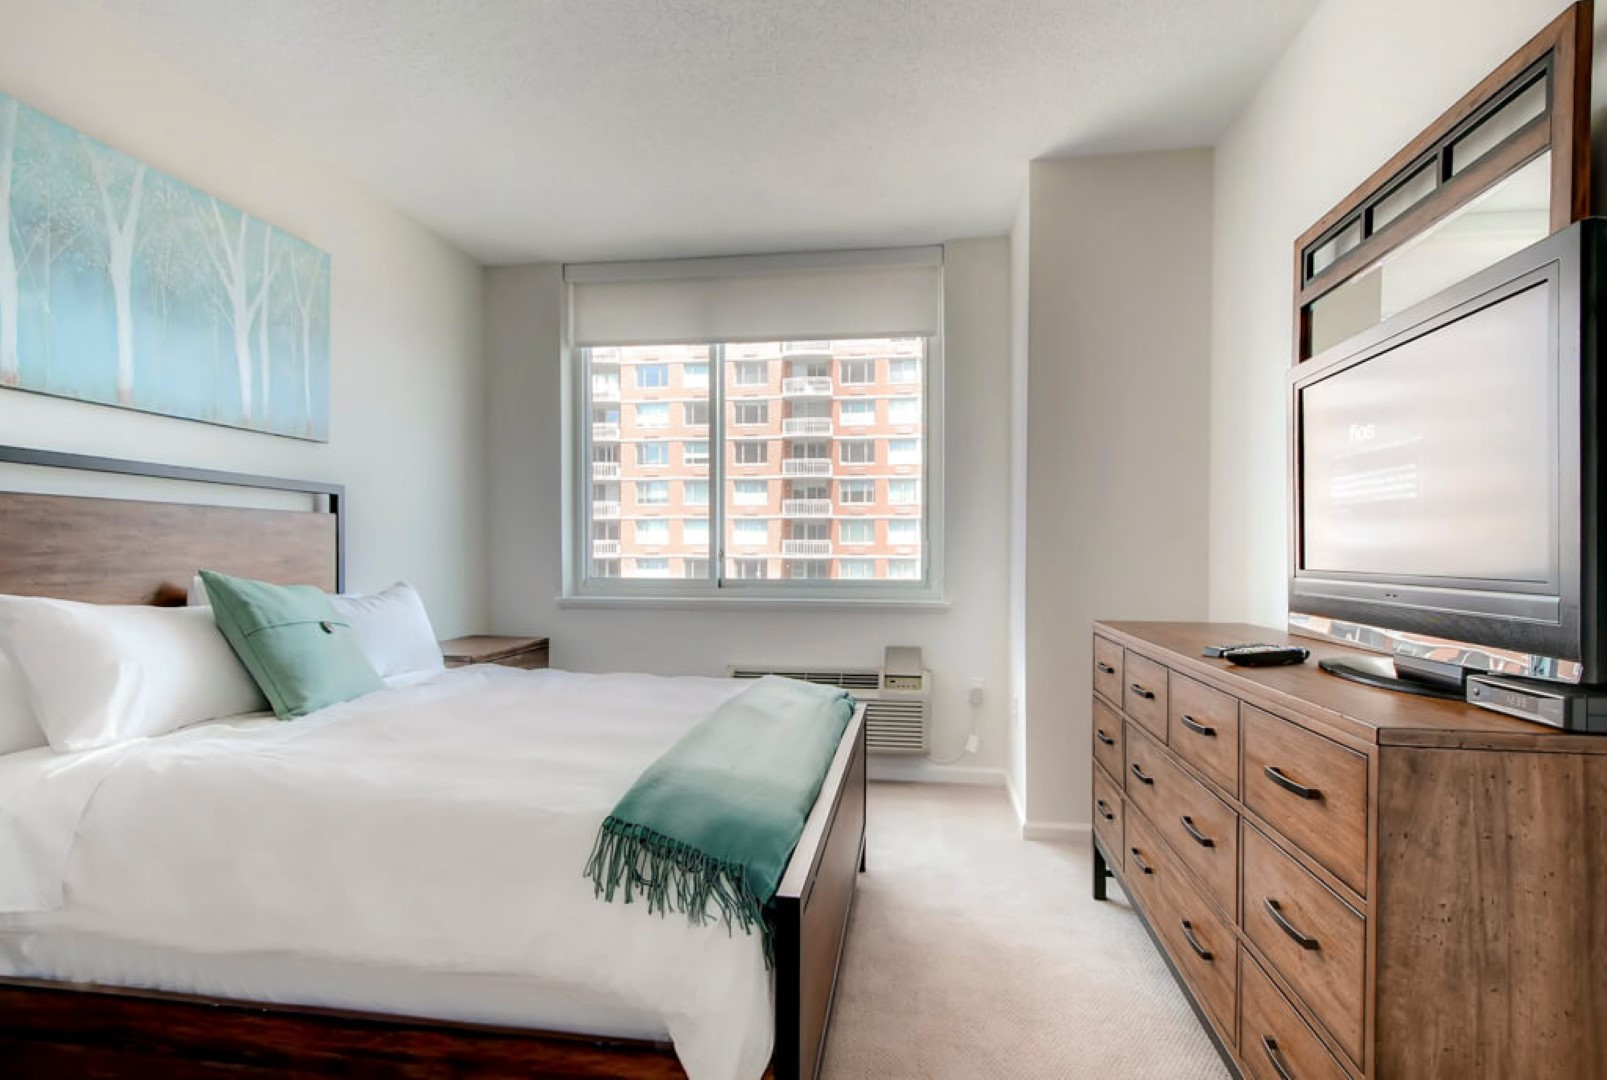 Bed at M2 Apartments, Hudson Exchange, Jersey City